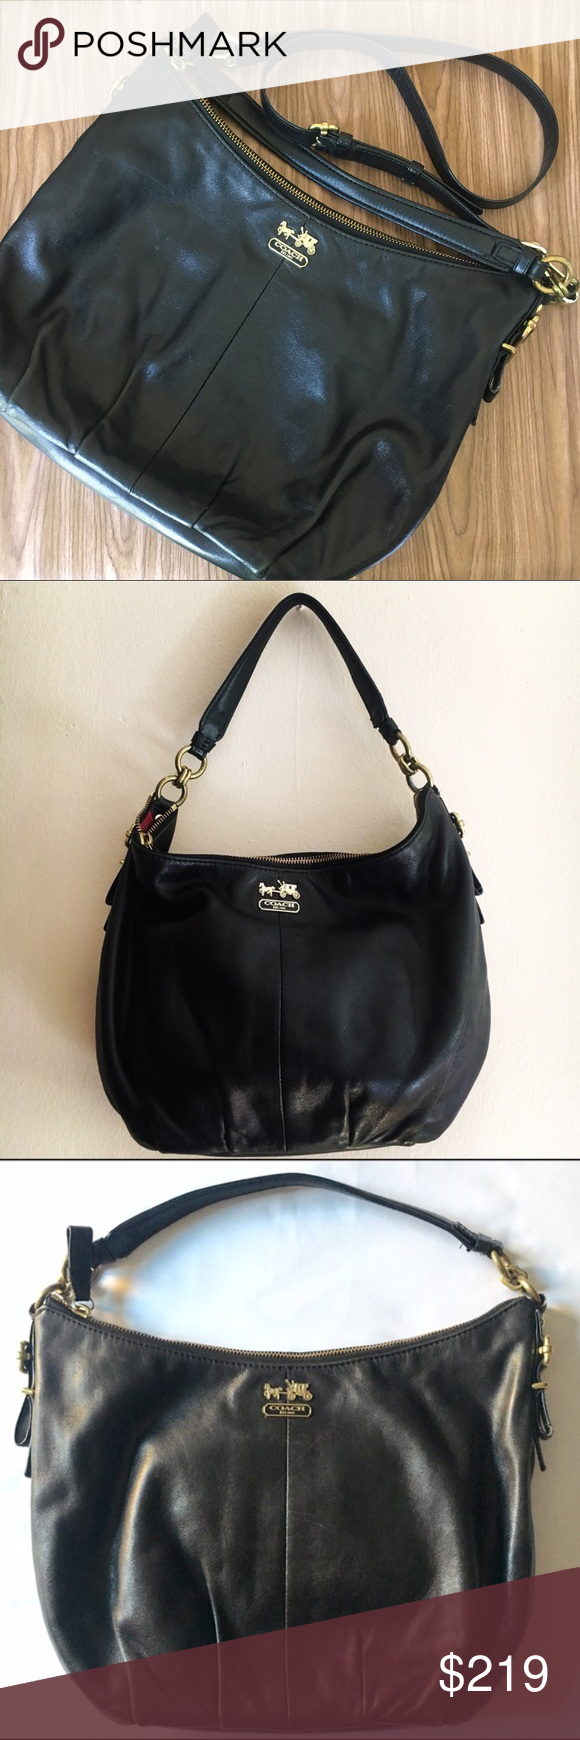 Coach Black Leather Convertible Bag Preloved Coach Leather Bag